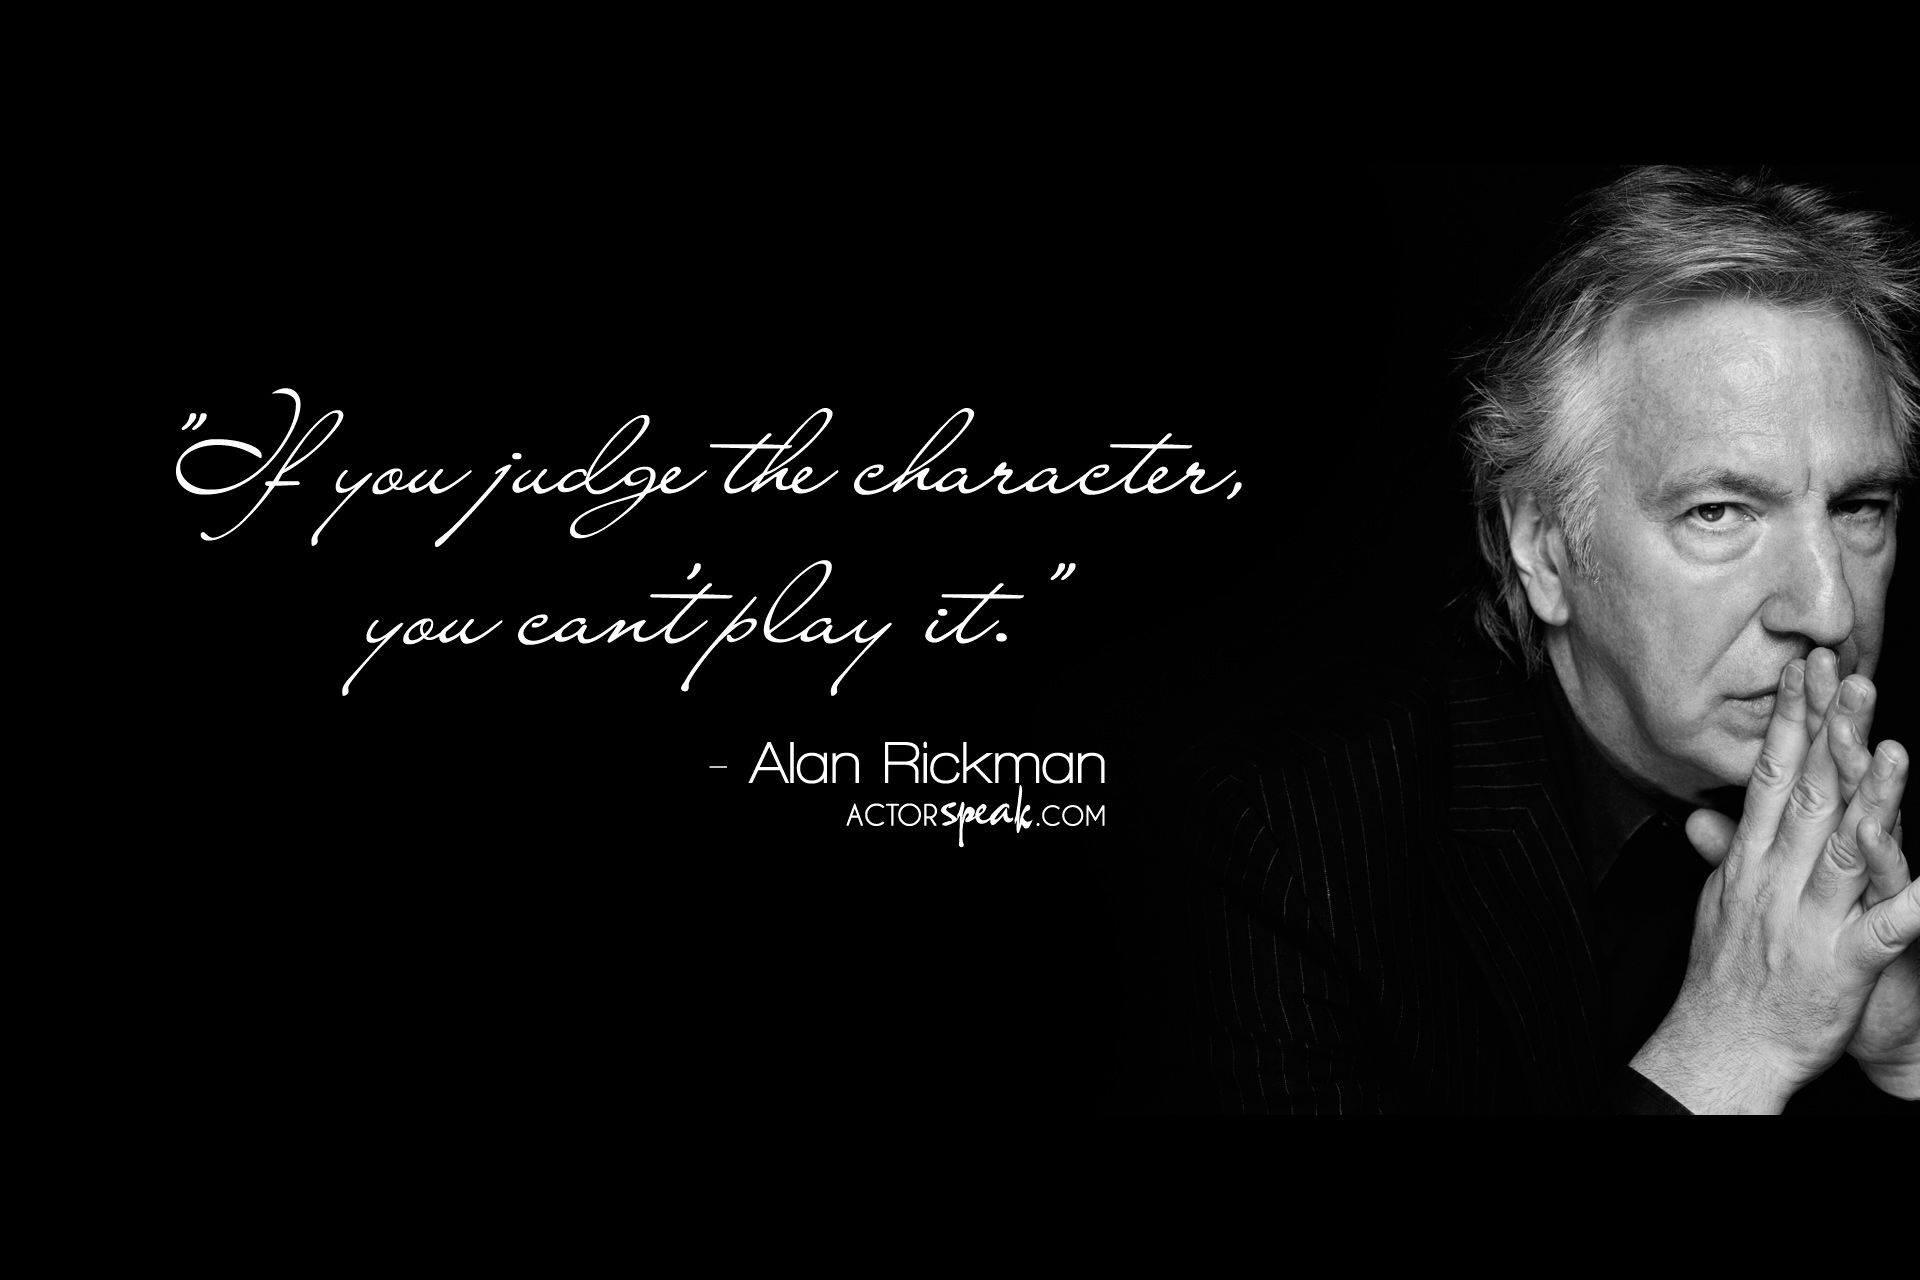 Betty white quotes quotesgram - Alan Rickman Quote On Acting